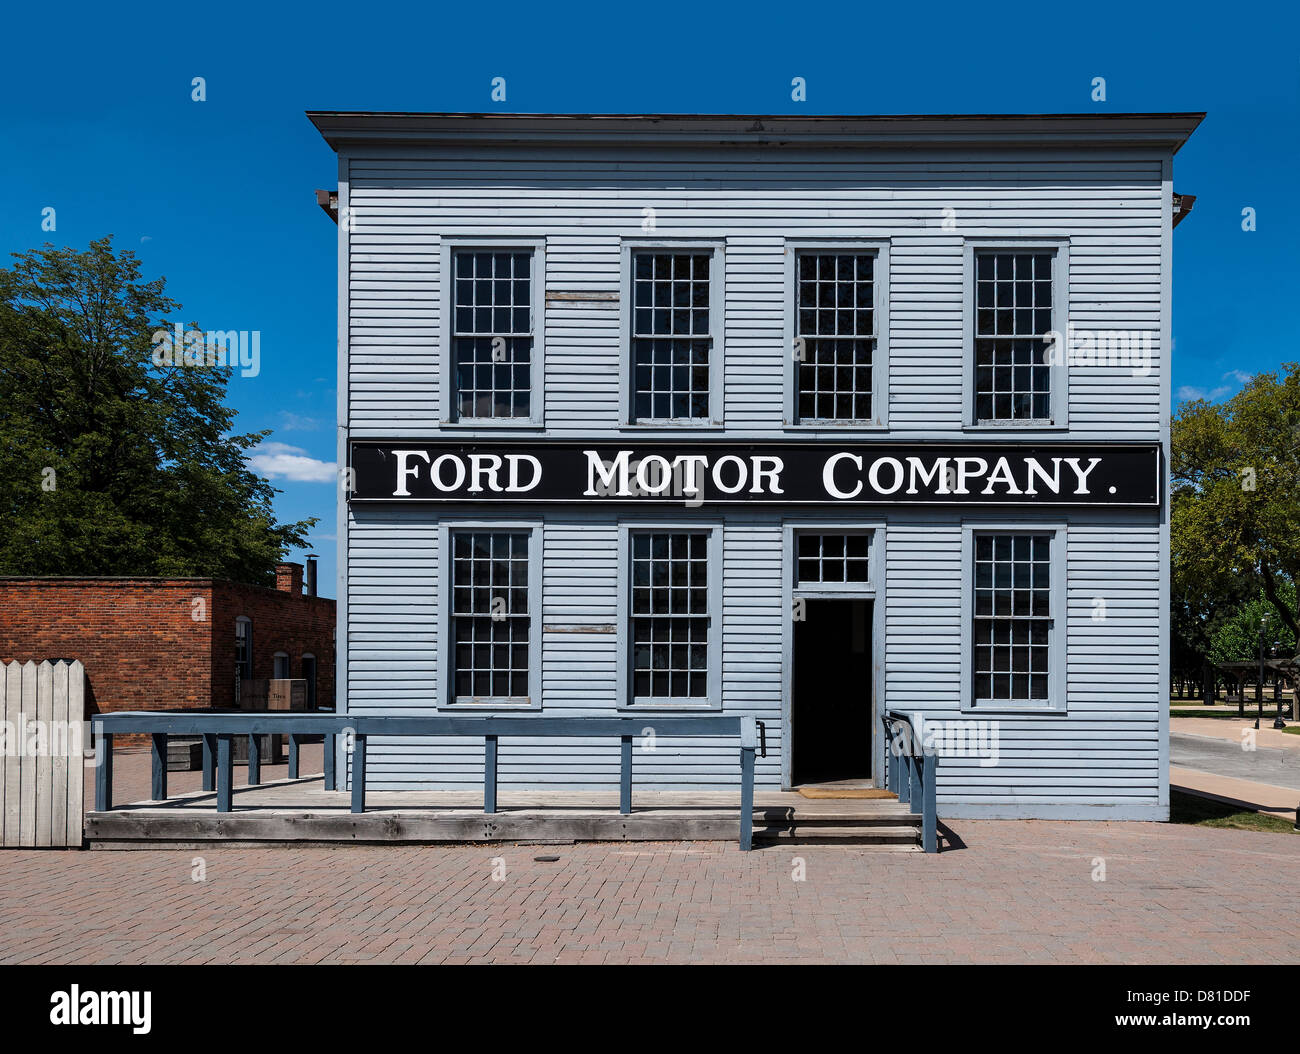 Book preservation stock photos book preservation stock for The ford motor company